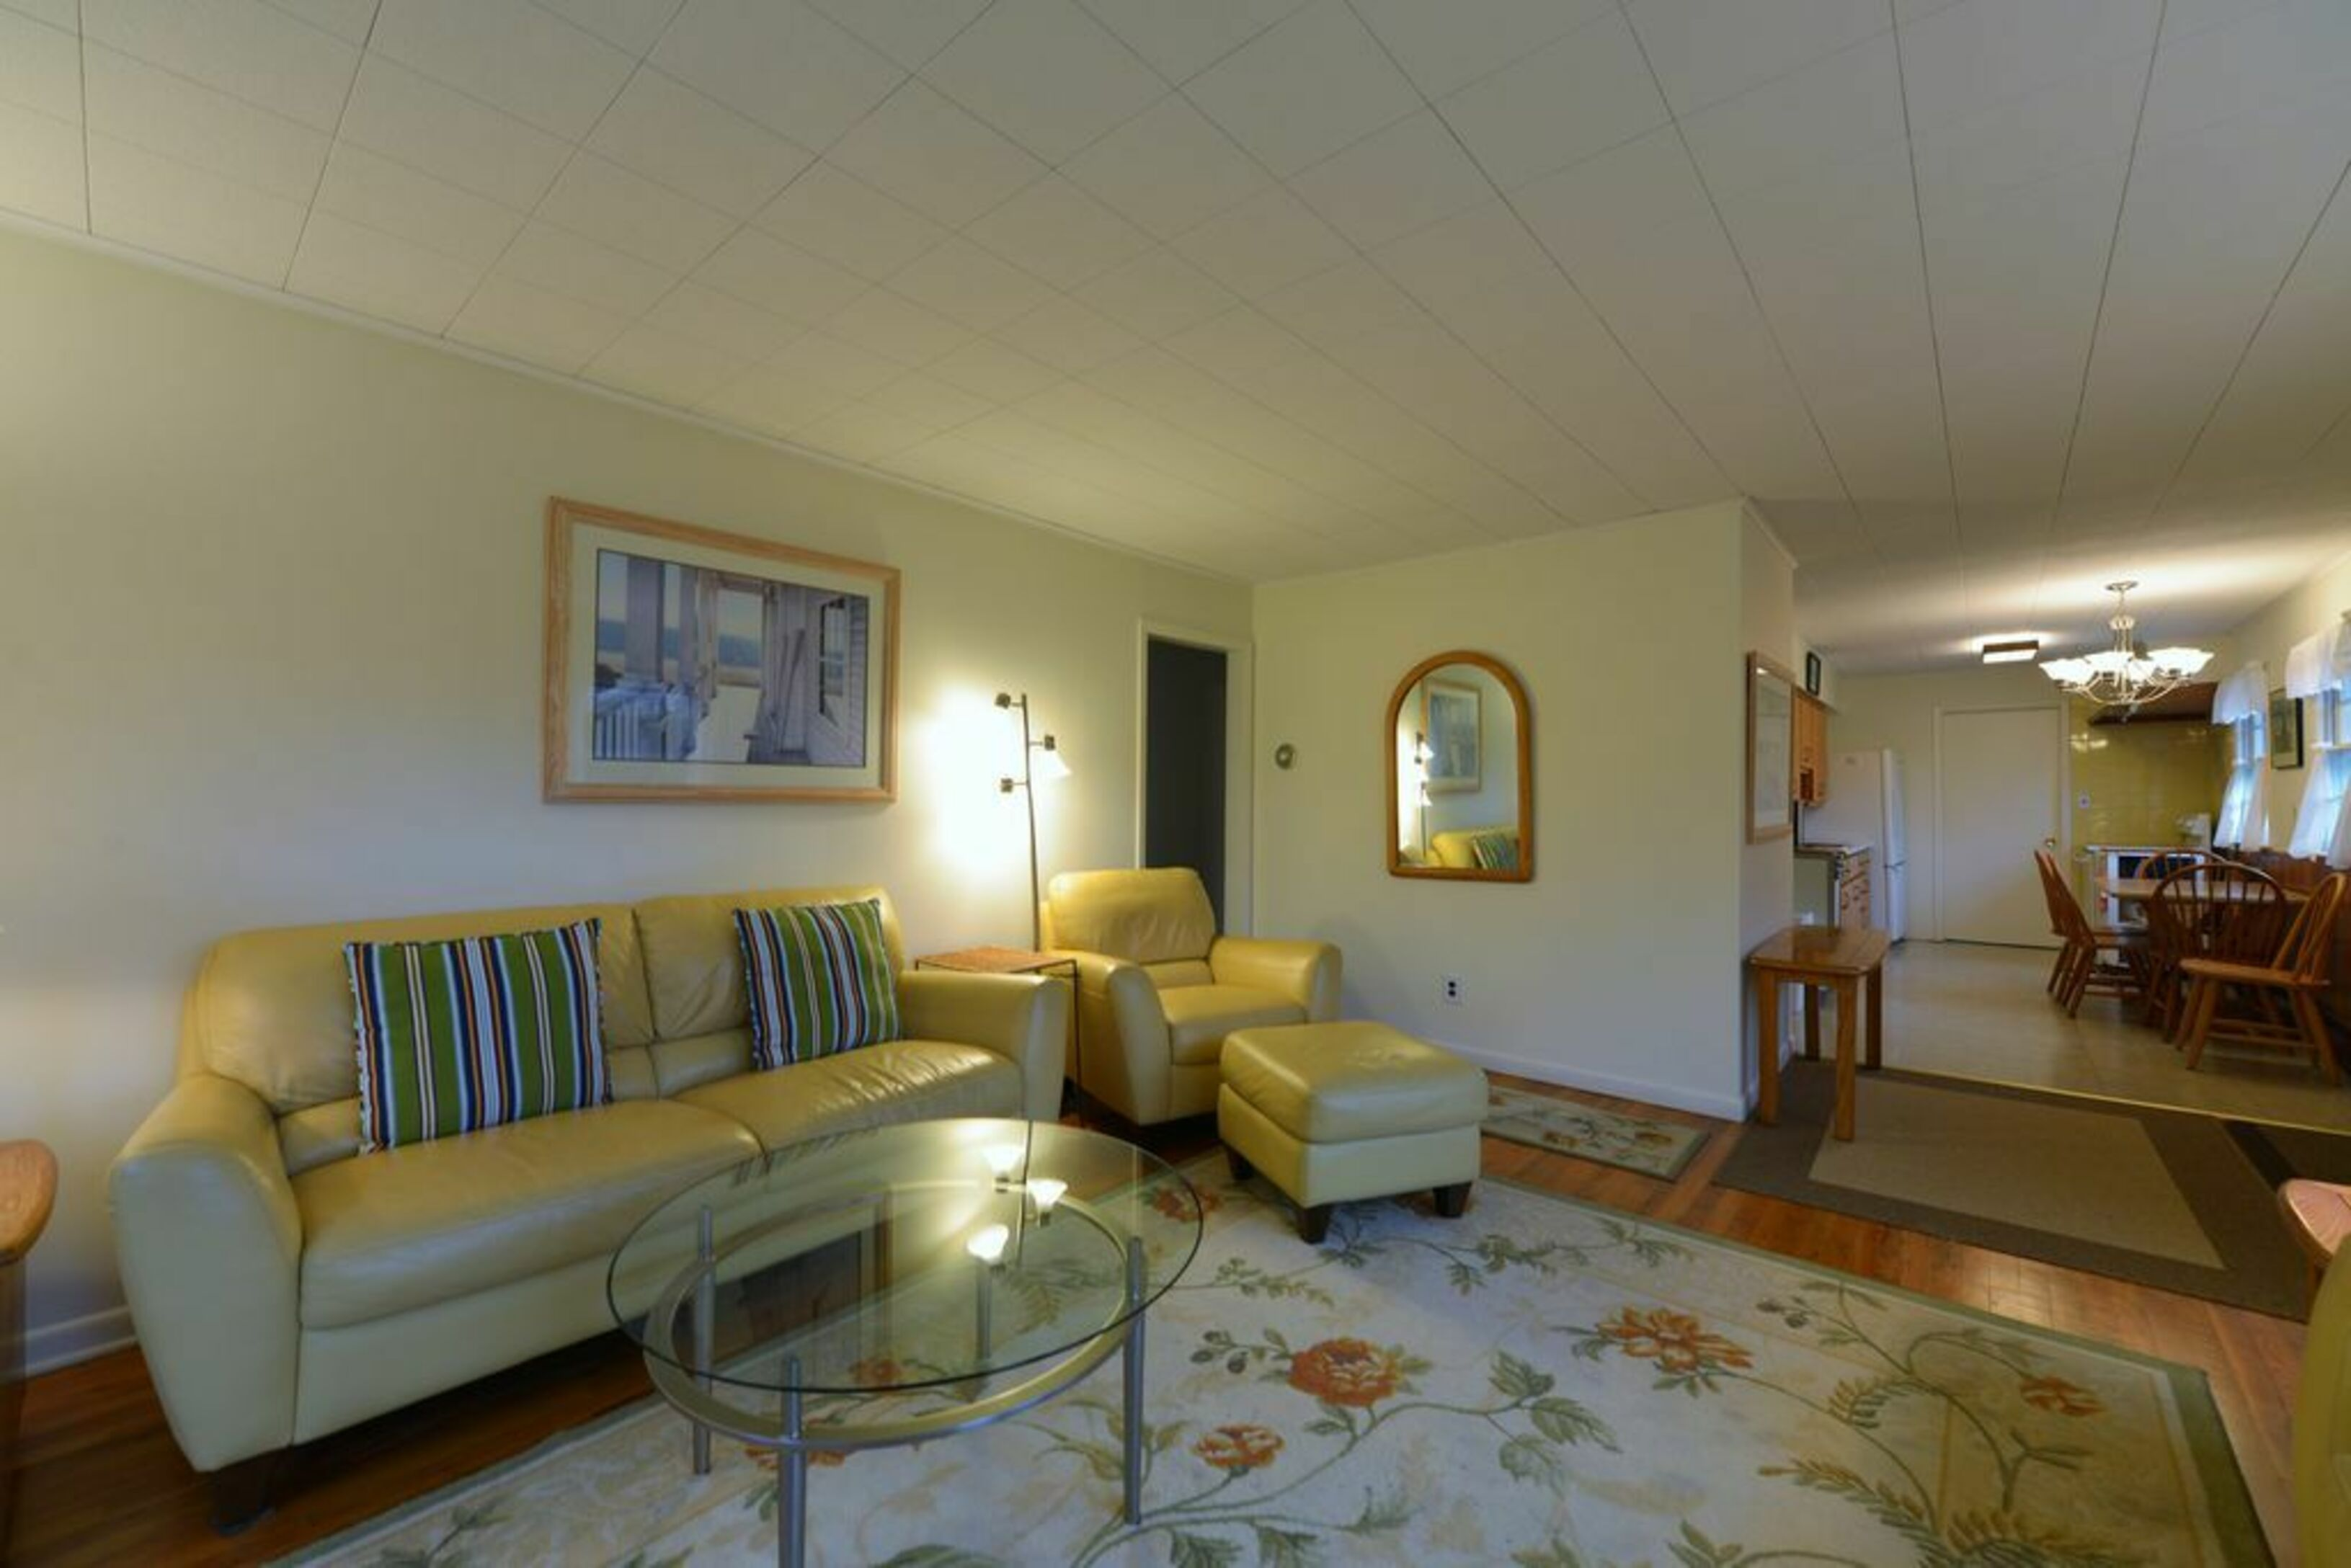 Located in Amagansett Lanes close to the ocean